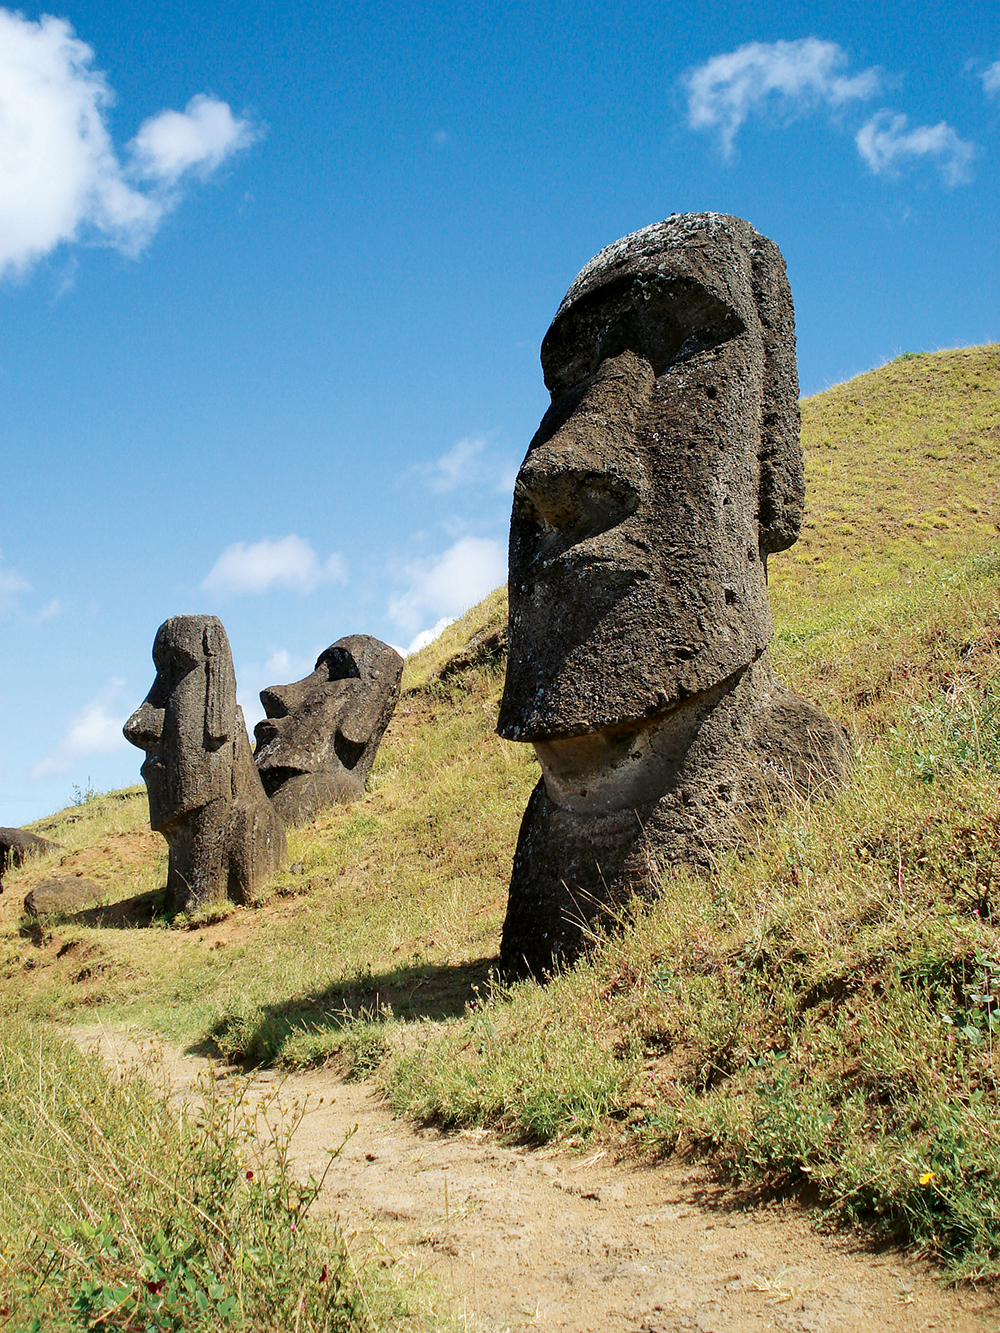 Extend your trip with a visit to Easter Island